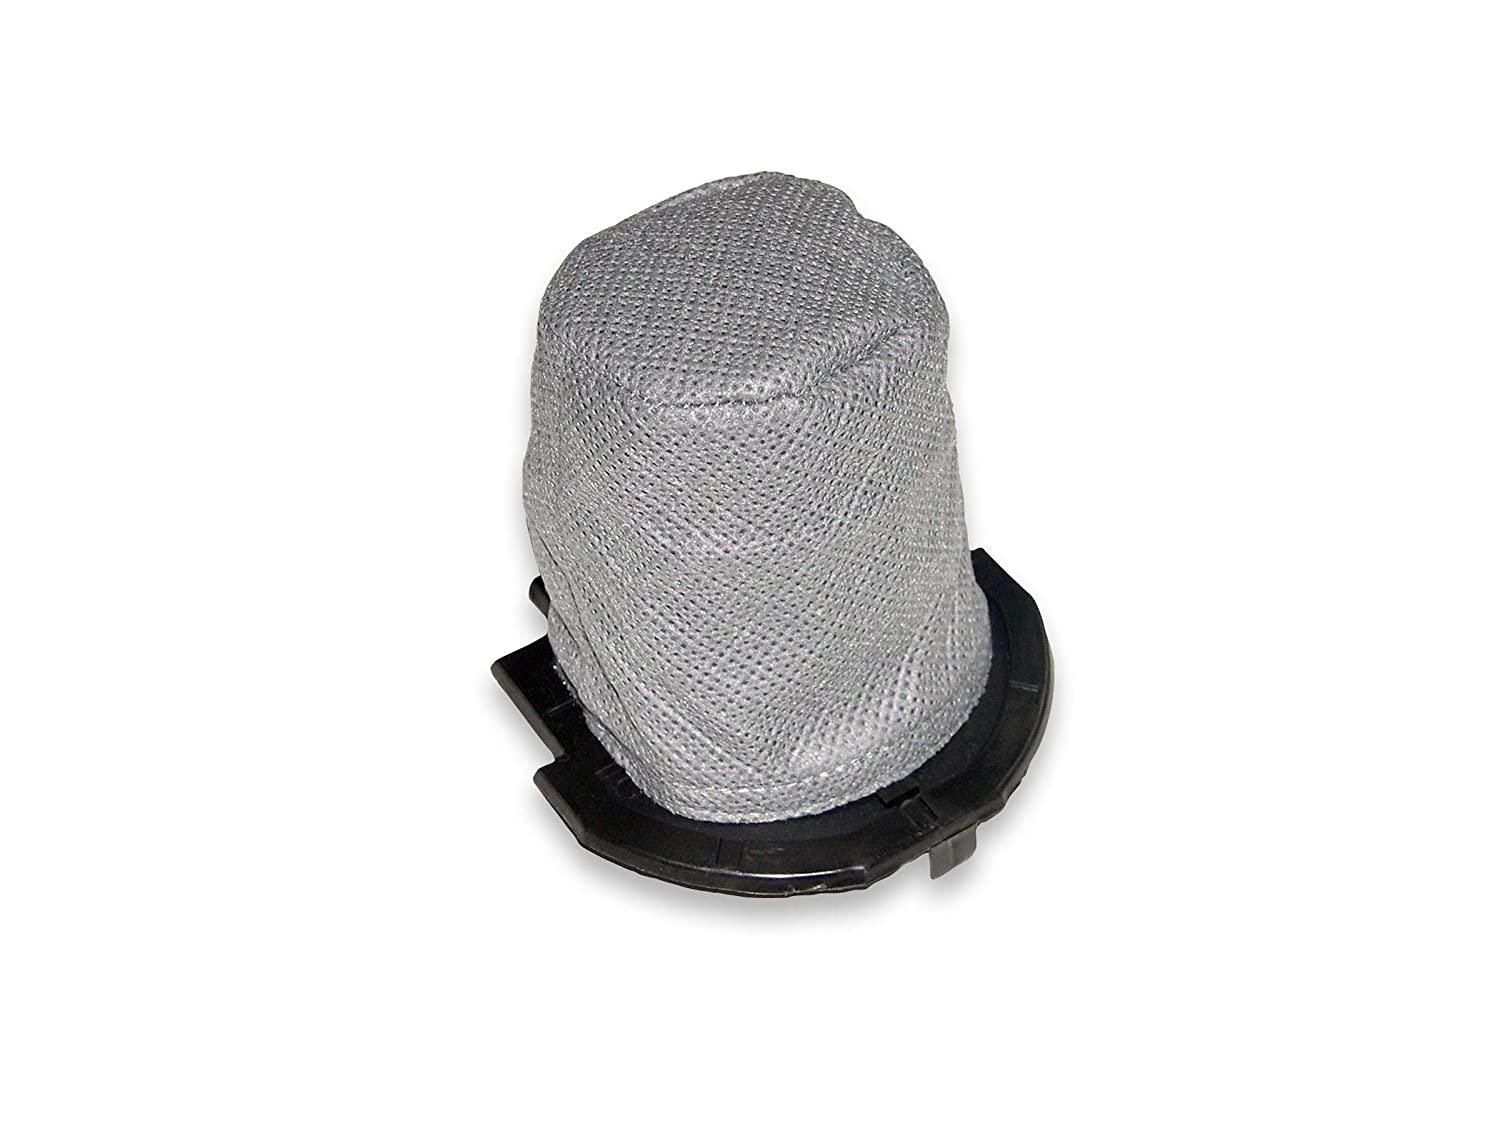 Hoover Genuine Primary Outlet Filter for Flair Stickvac Models S2200 and S2220